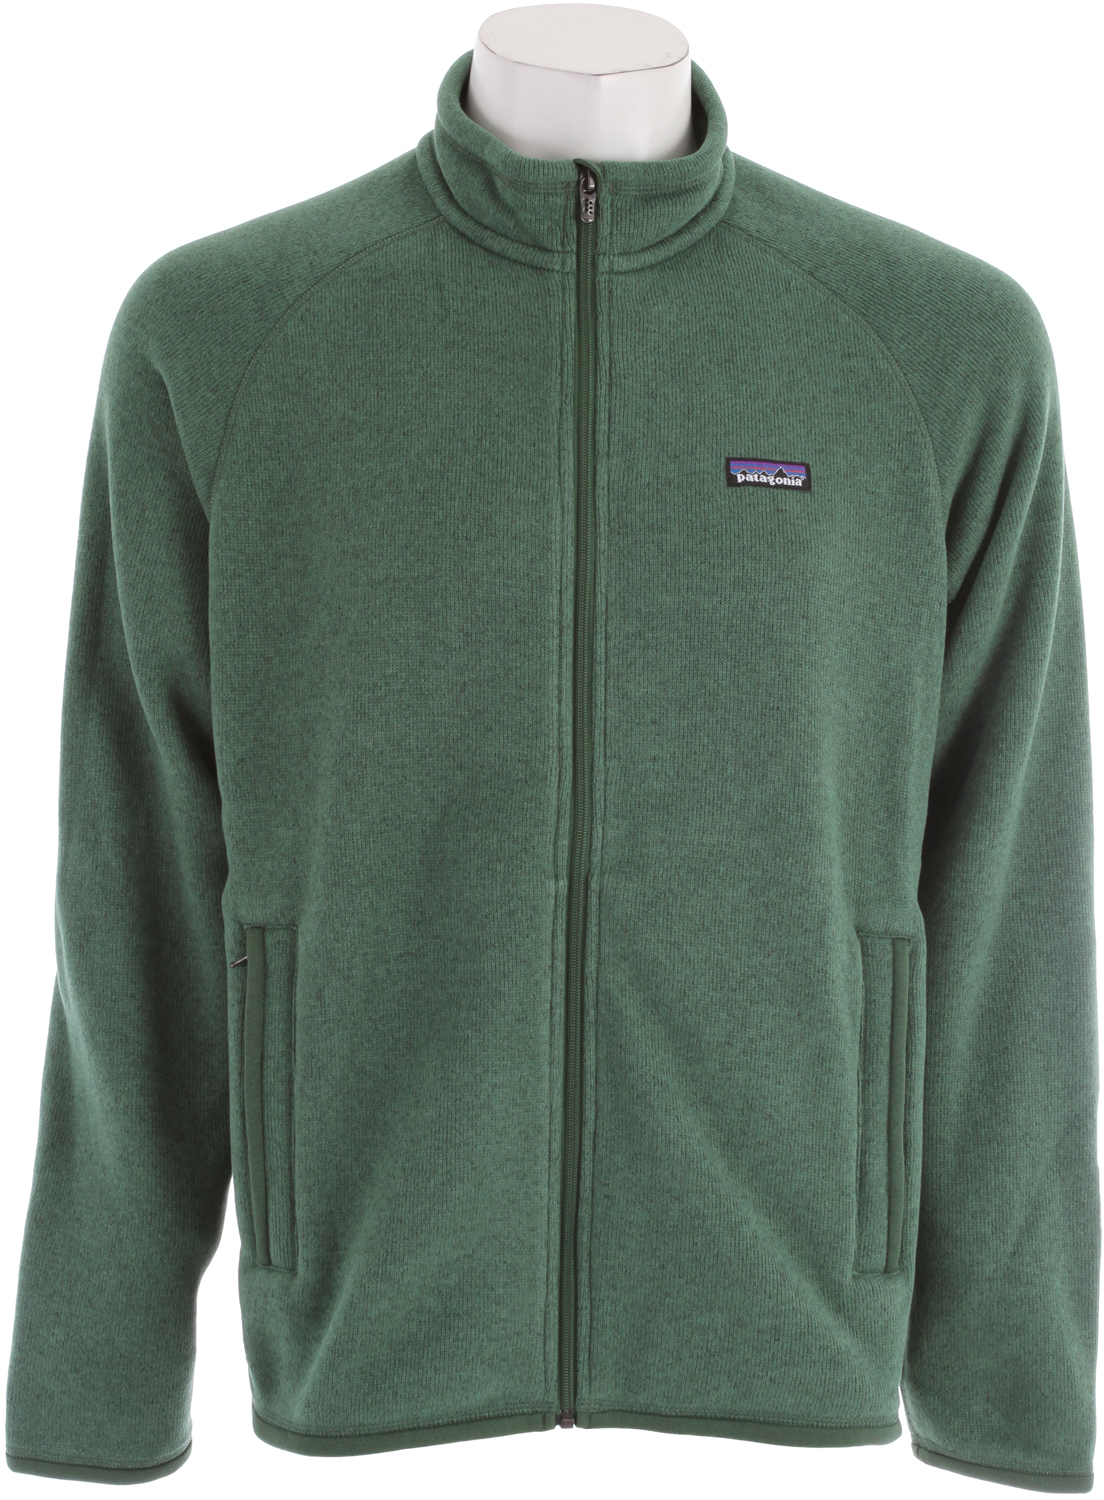 Surf A soft, full-zip polyester fleece jacket that has a sweater-knit face and a warm fleece interior. fabric: 9.5-oz 100% polyester with a sweater-knit exterior and fleece interiorKey Features of the Patagonia Better Sweater Jacket Fleece: Fabric has a sweater-knit face, fleece interior and heathered yarns Full-zip jacket with zip-through, stand-up collar and zipper garage Raglan sleeves for pack-wearing comfort Two zippered handwarmer pockets Micropolyester jersey trim on cuffs, hem and back of neck Can be worn with layers as outerwear or as a midlayer under a shell Hip length - $89.95